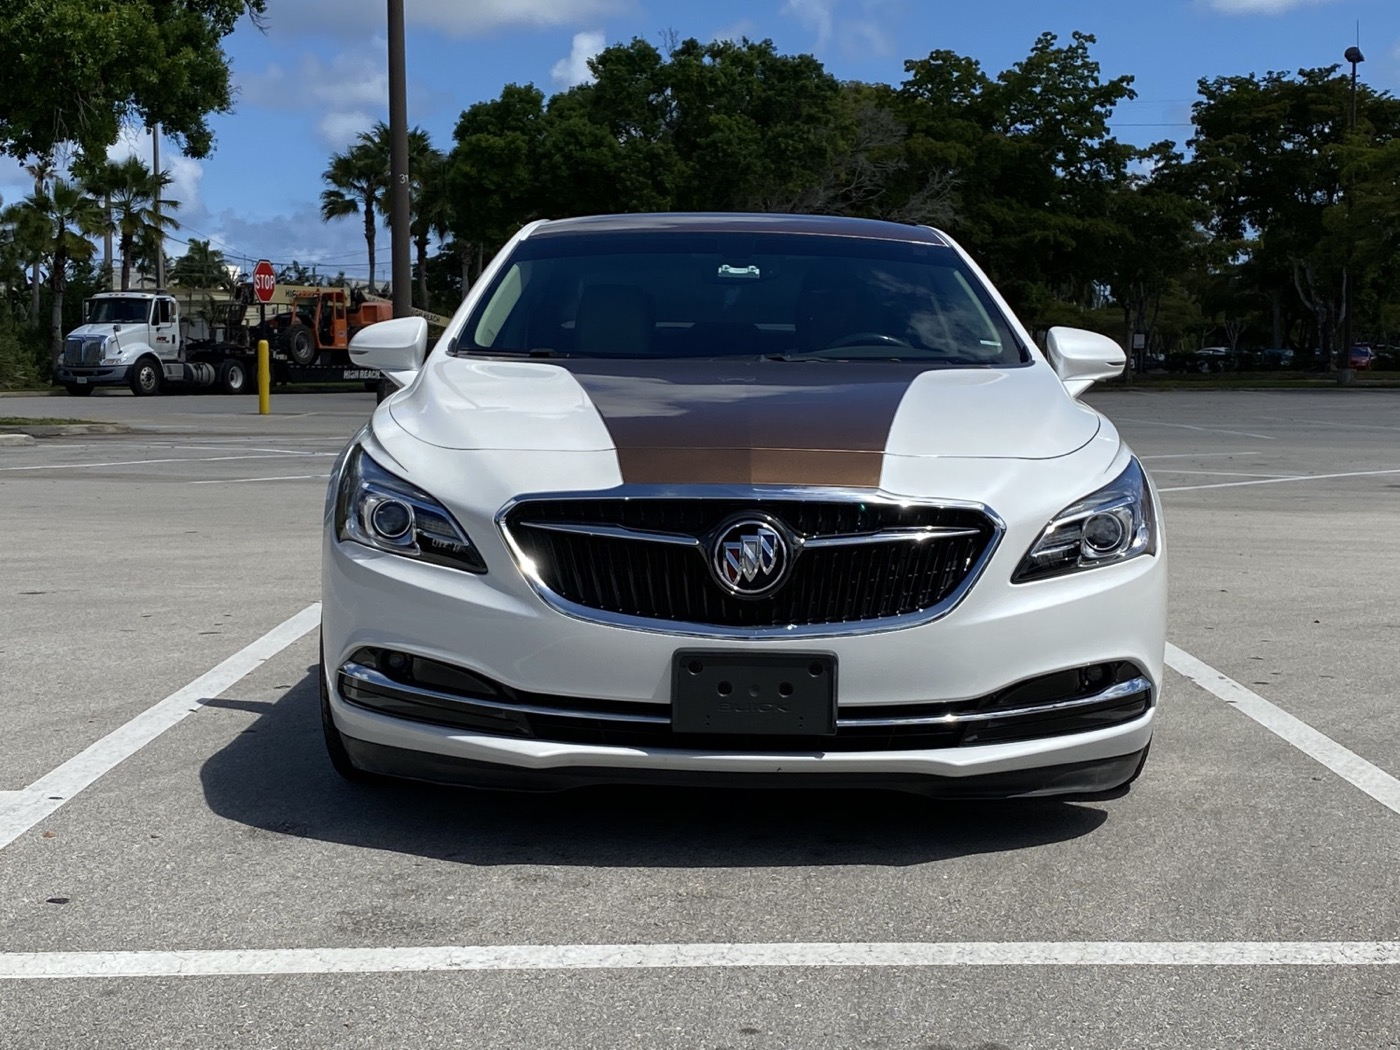 Check Out This Special 2018 Buick Lacrosse | Gm Authority 2022 Buick Lucerne Rims, Tire Size, Headlights